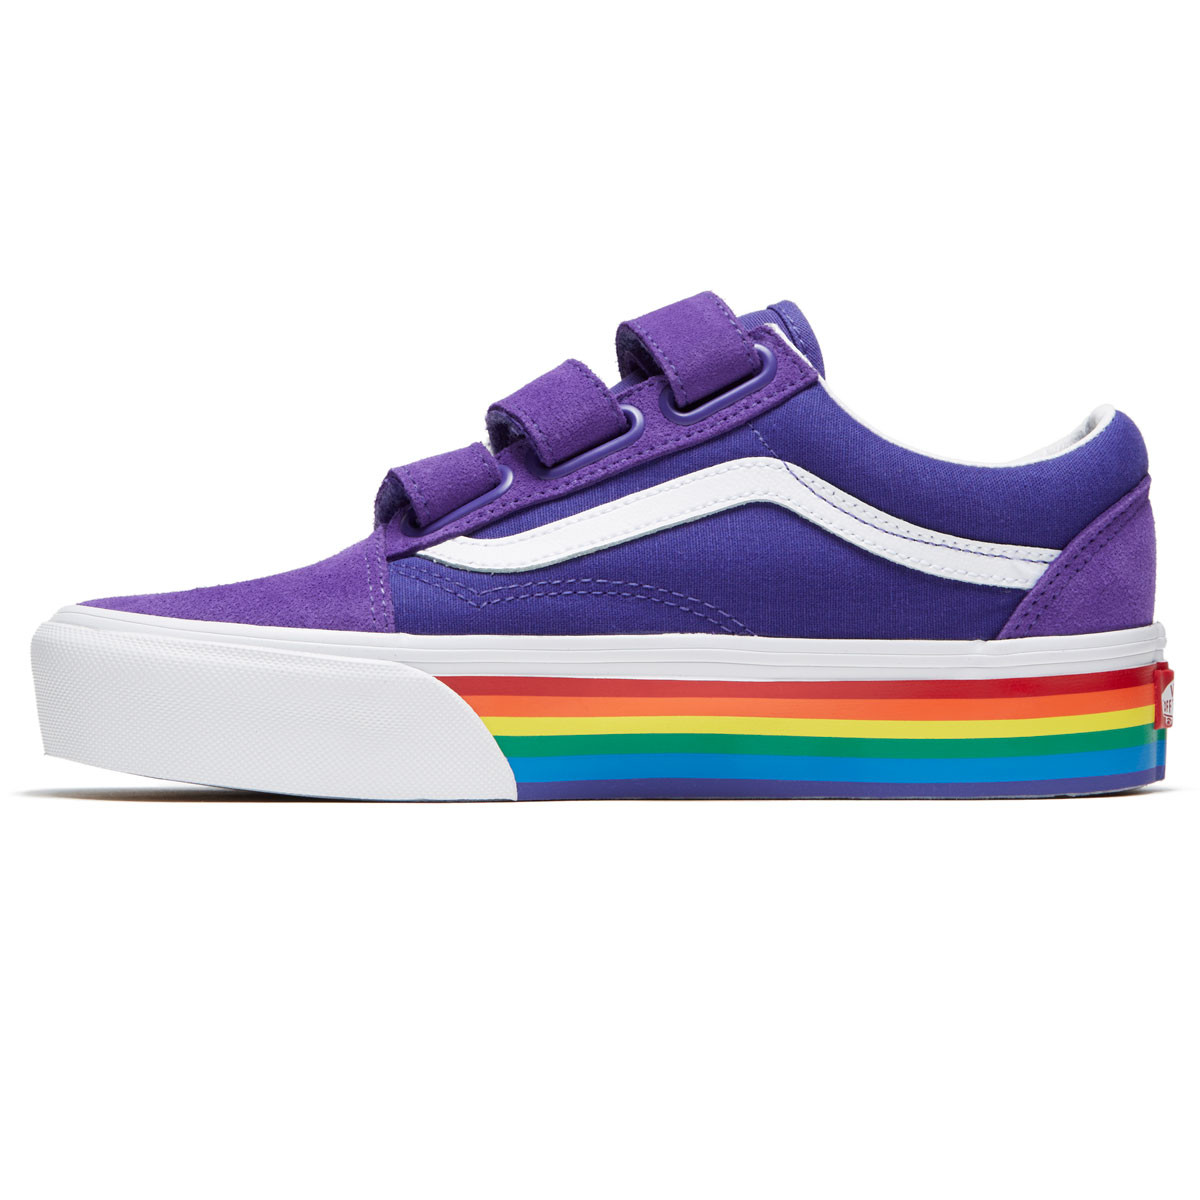 43152adbd51 Vans Unisex Old Skool V Platform Shoes - Rainbow Liberty True White - 4.5